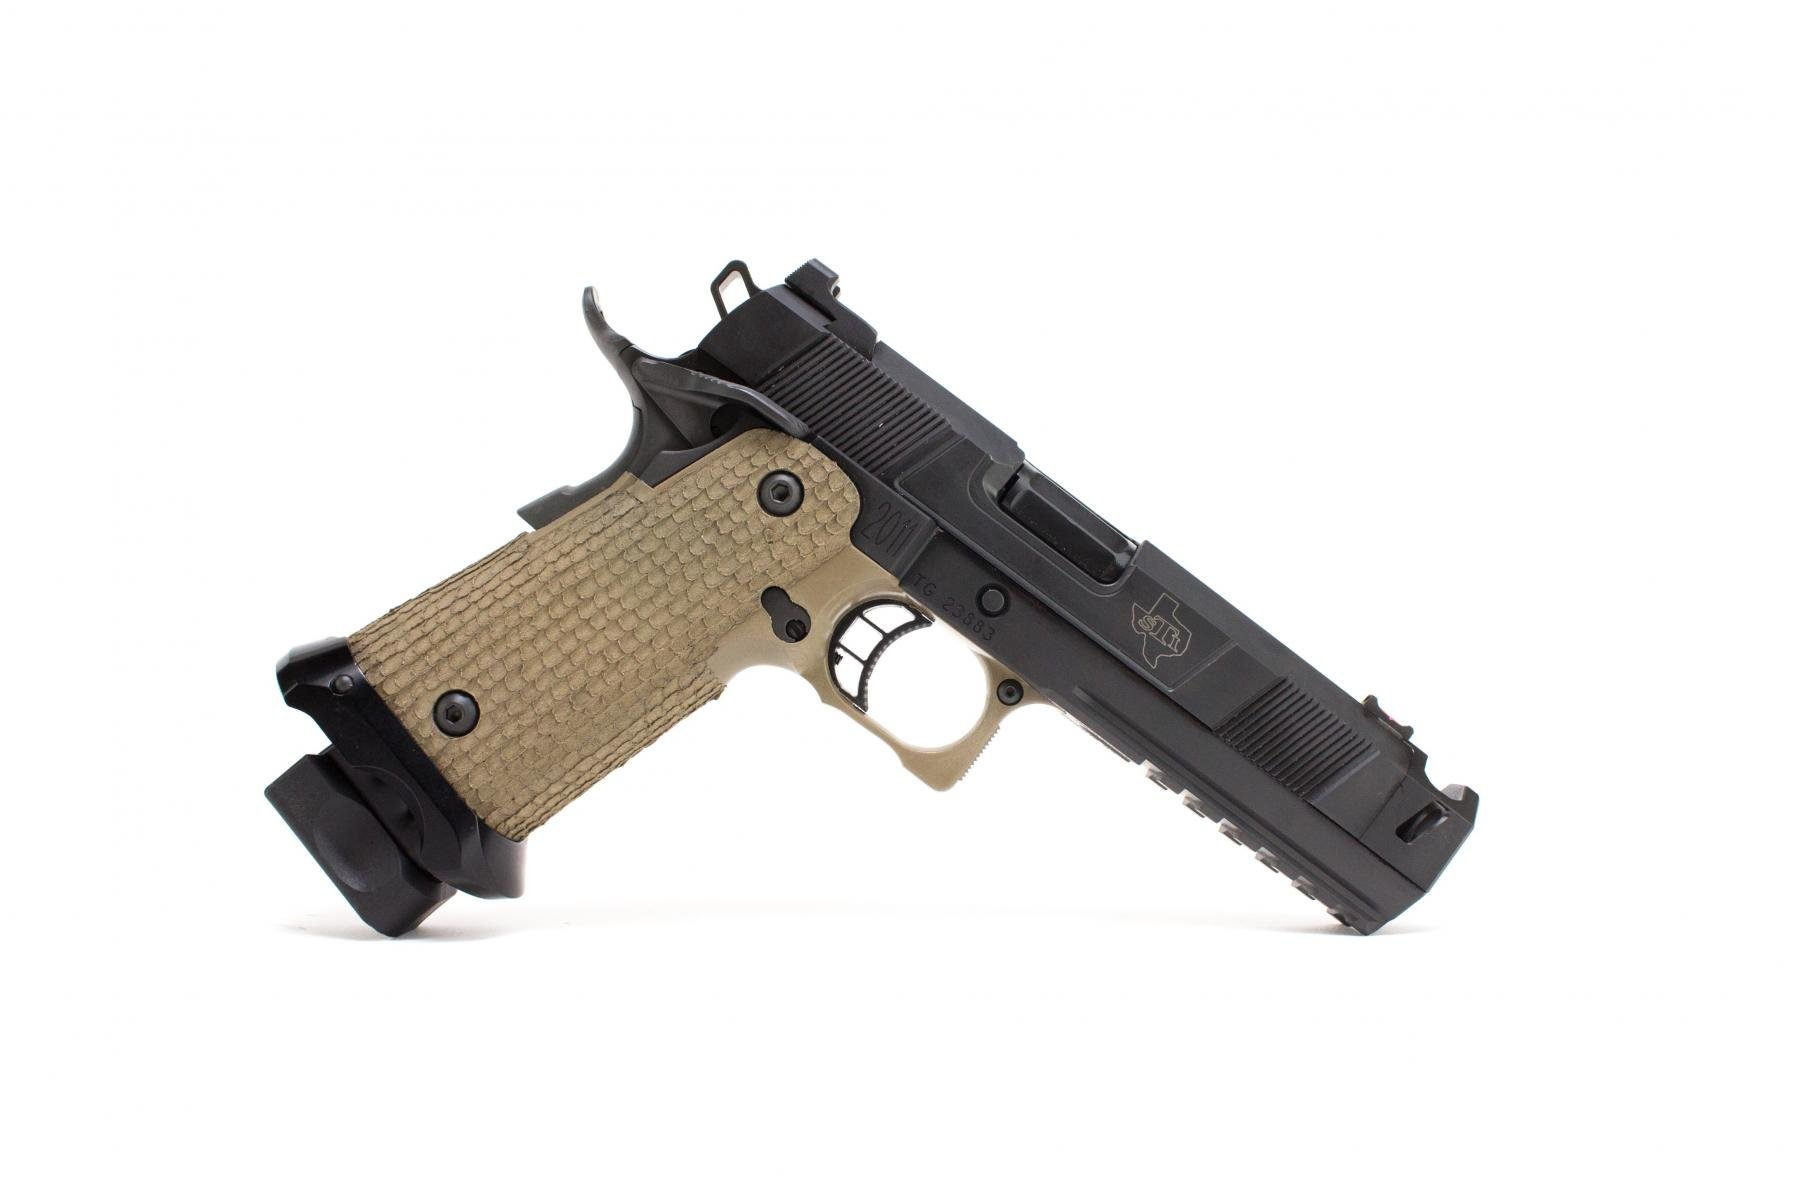 "STI Costa Carry Comp 2011 |9mm 4"" Barrel, Compensator, Ambi Safety, Magwell, Heinie Ledge Rear Sight, Fiber Optic Front Sight, 2 17 Rd Magazines"